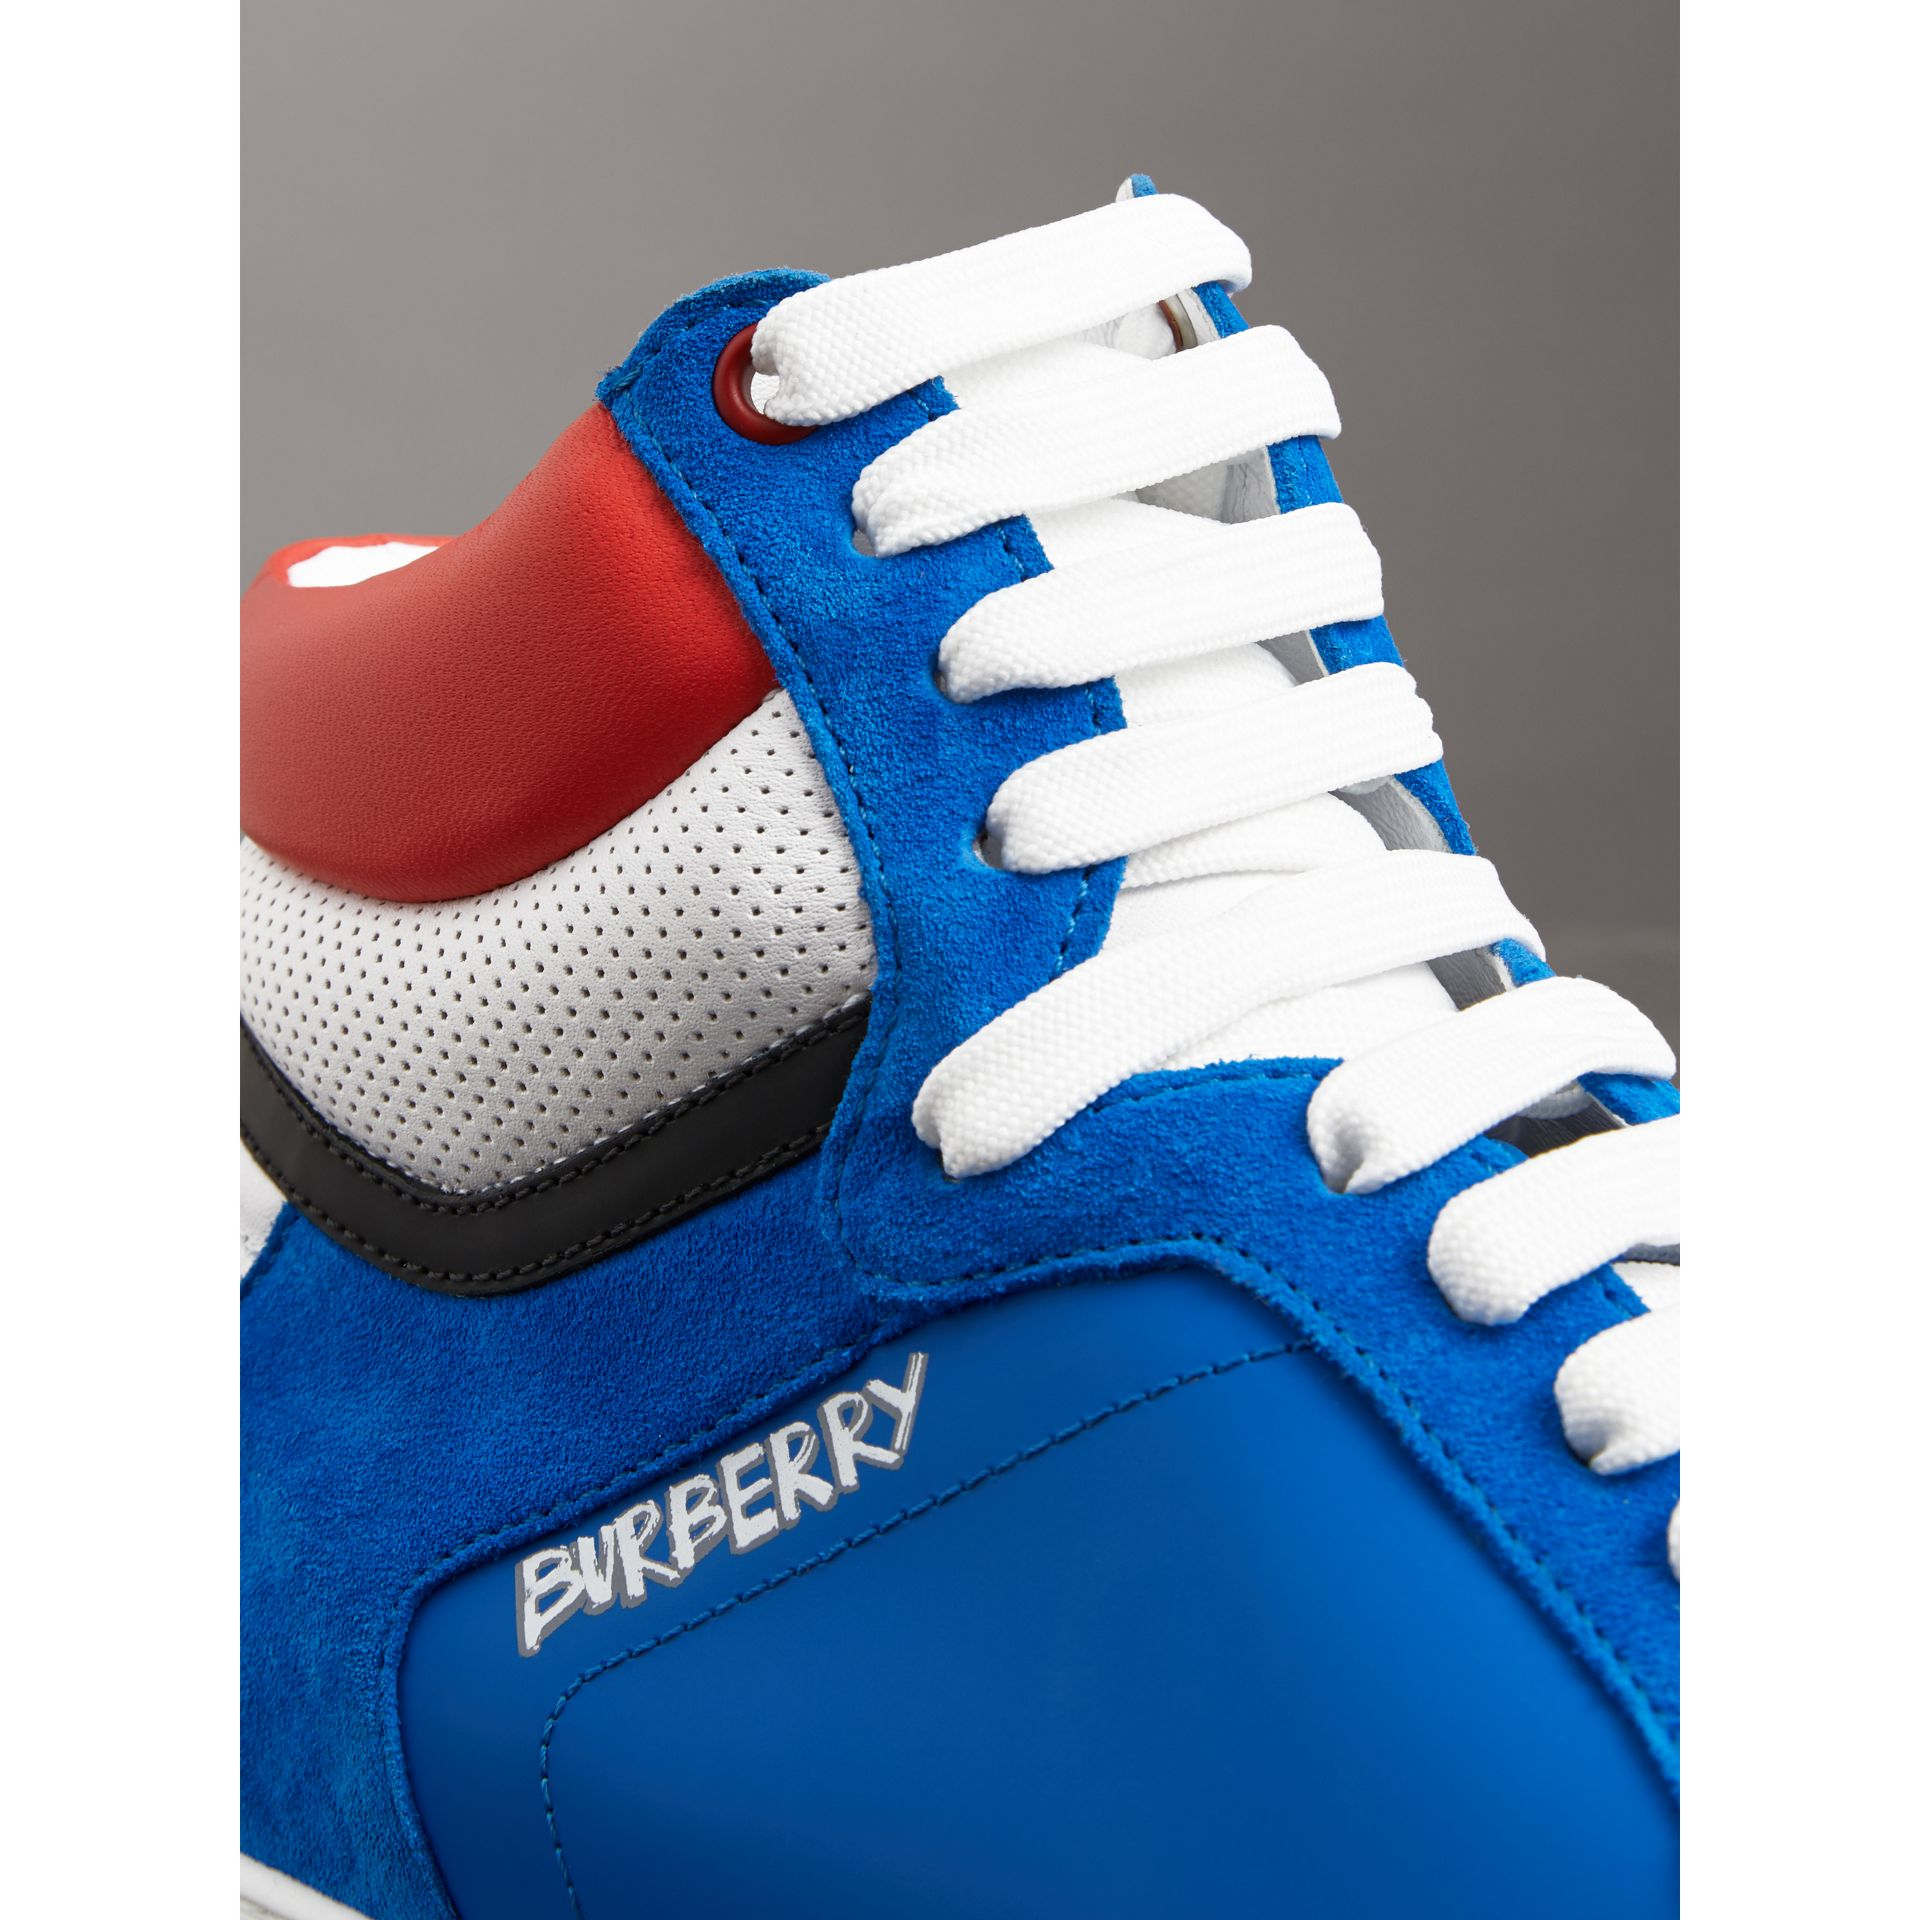 Leather and Suede High-top Sneakers in Bright Sky Blue - Men | Burberry United Kingdom - gallery image 1